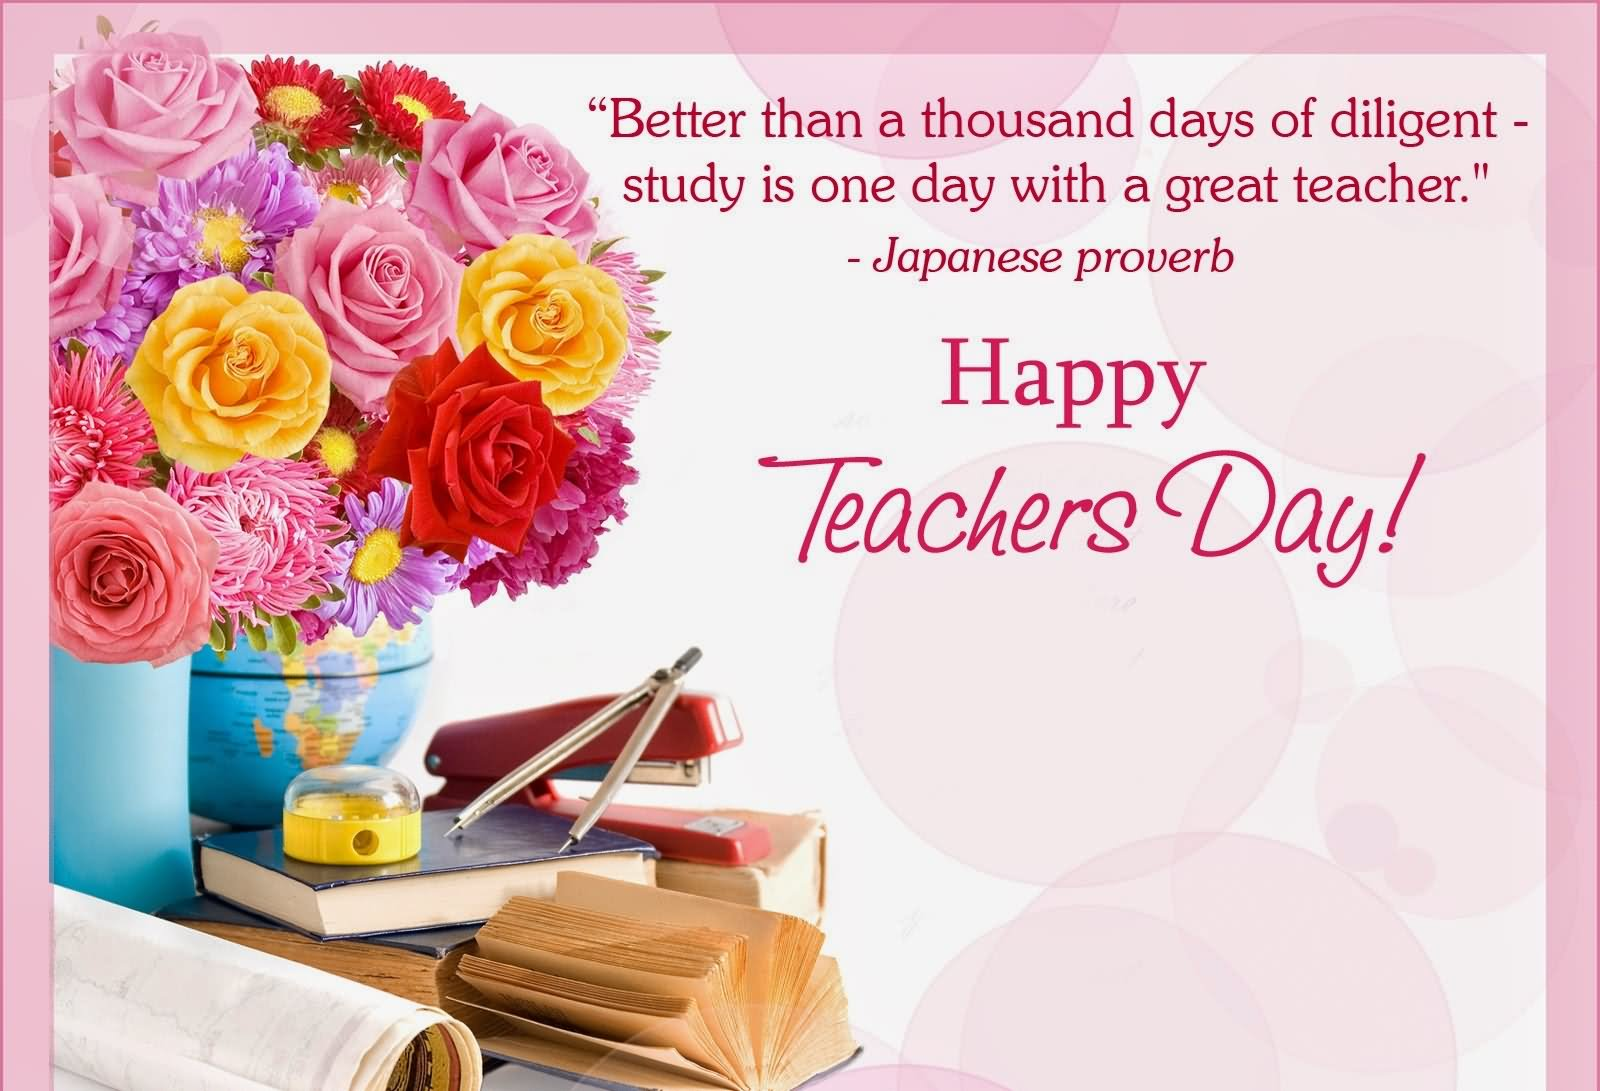 50 wonderful happy teachers day wish pictures and images better than a thousand days of diligent study is one day with a great teacher happy kristyandbryce Choice Image